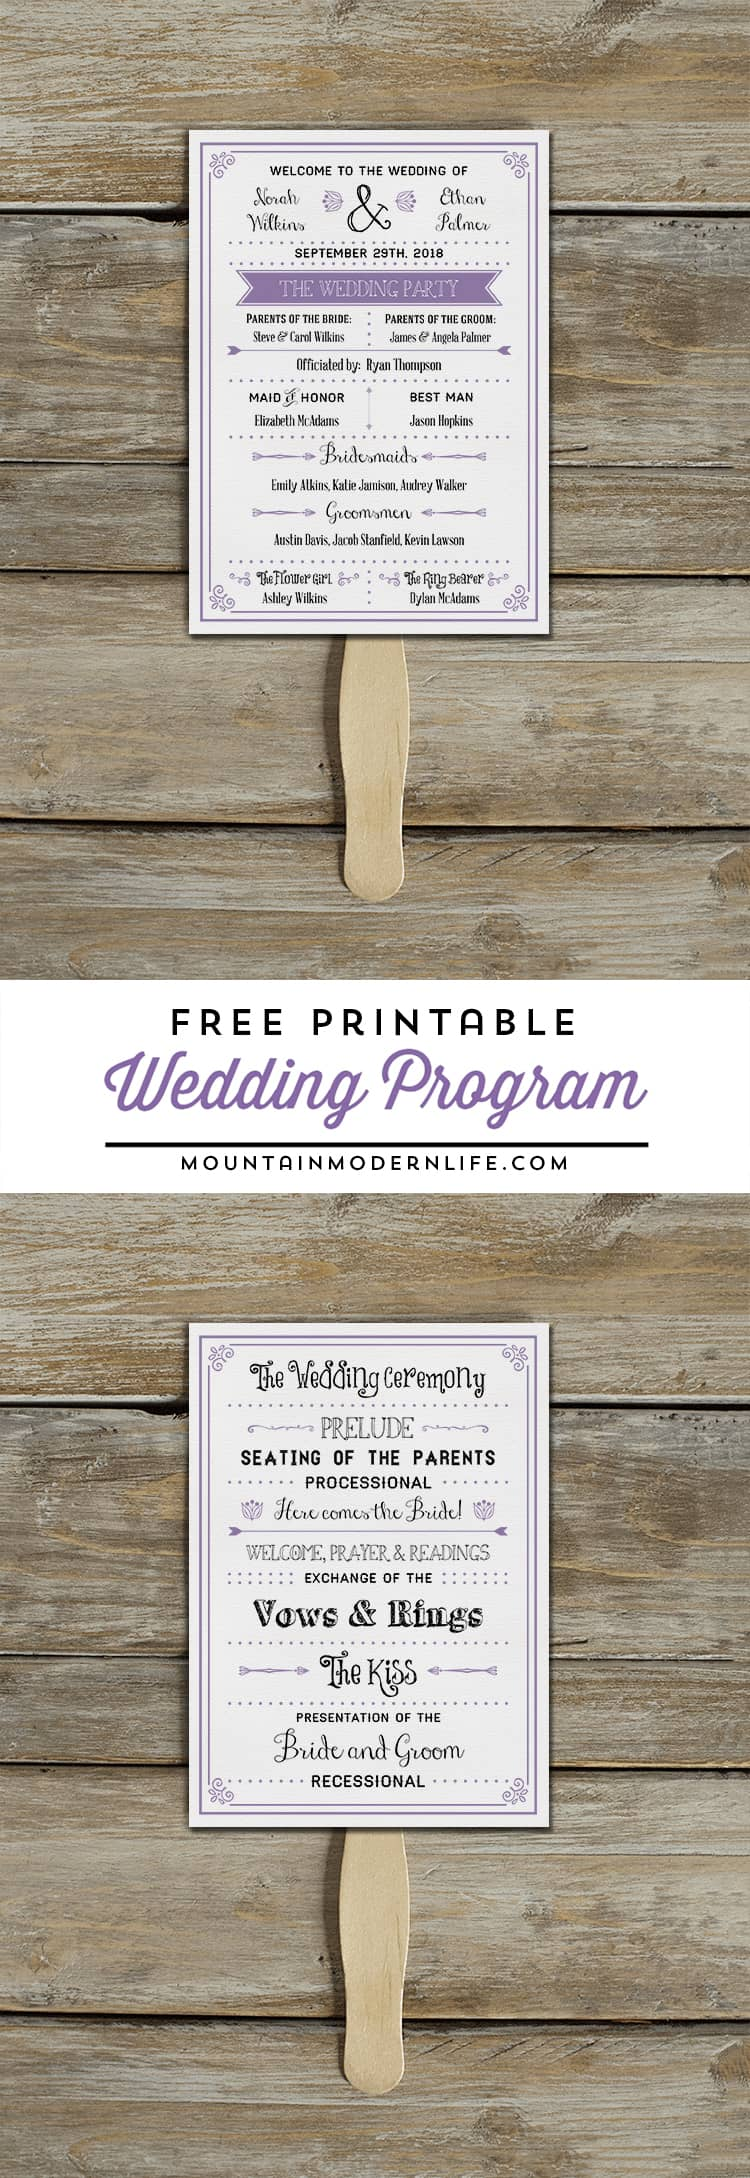 free downloadable wedding program template that can be printed - free printable wedding program